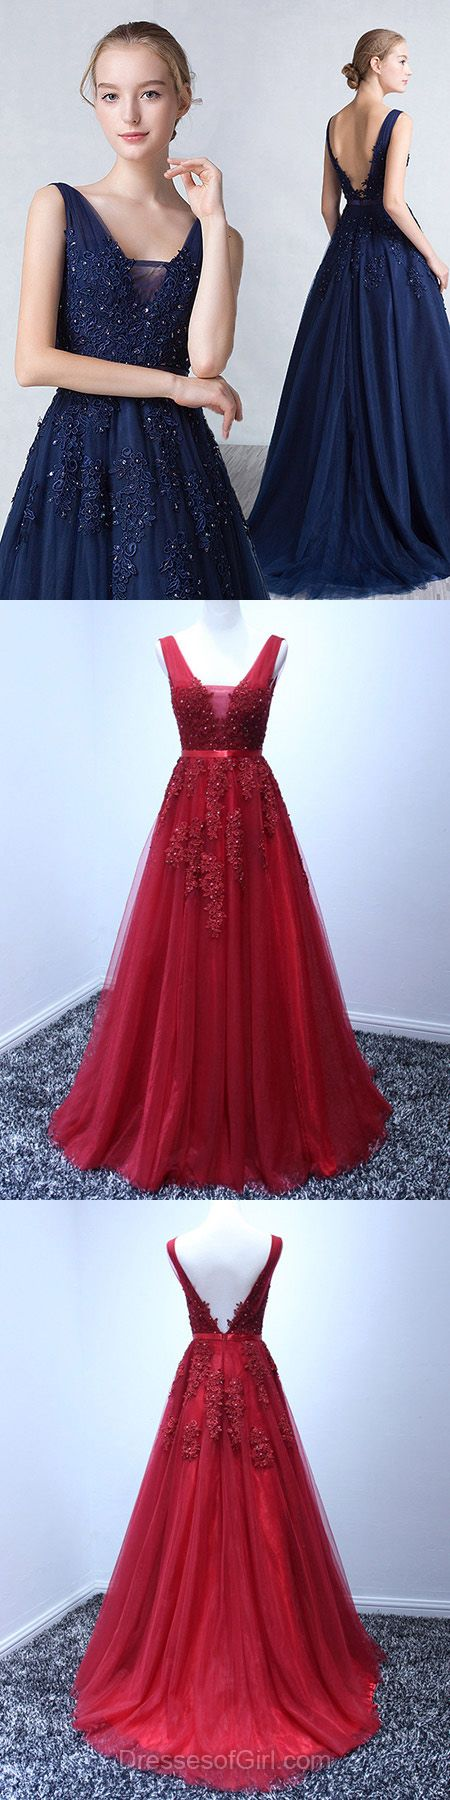 V neck prom dress princess prom dresses tulle evening dresses red